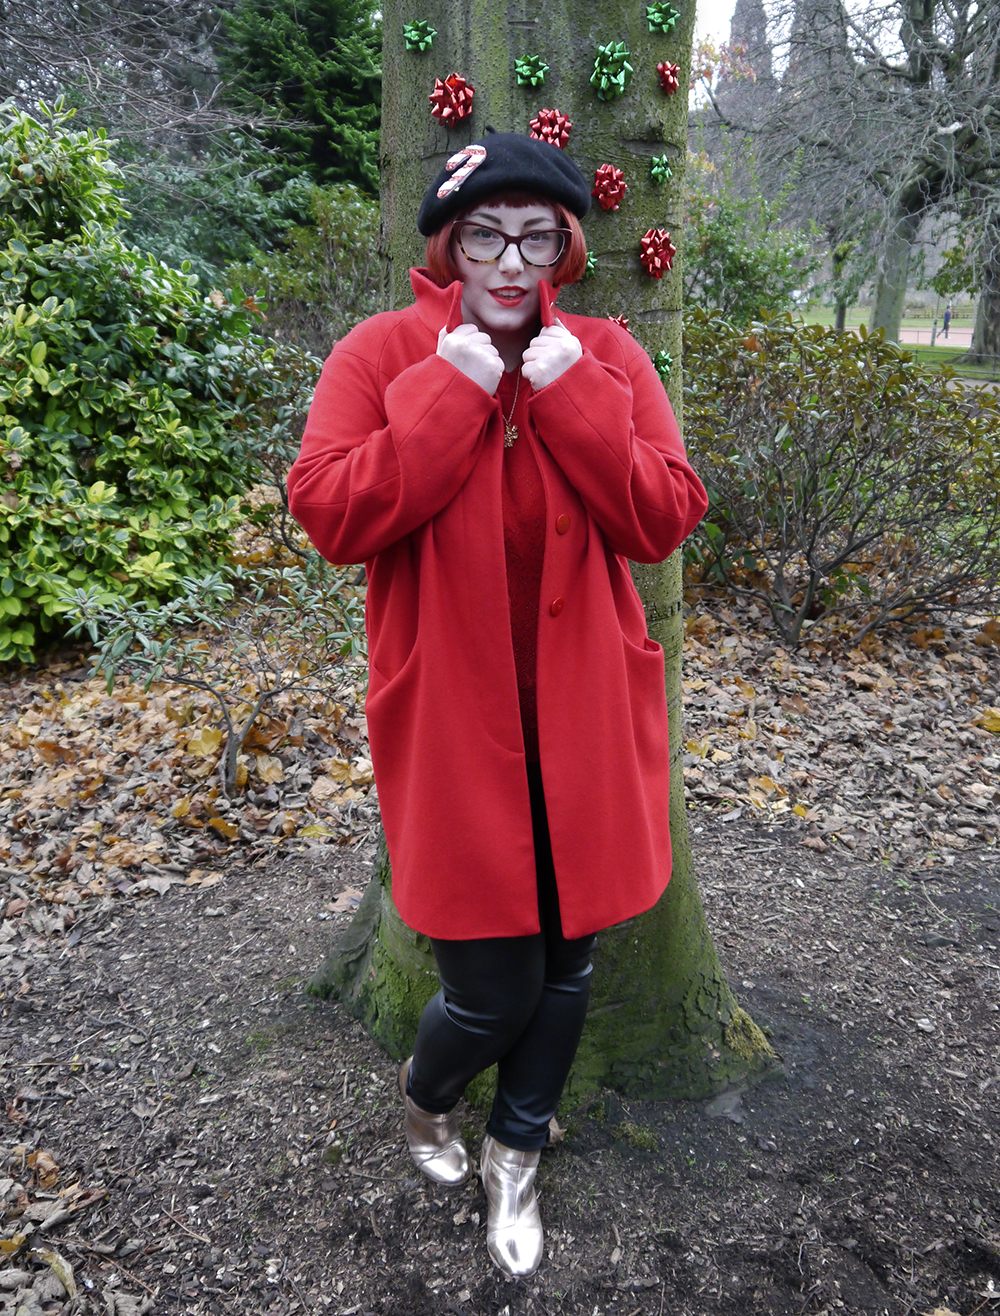 Unlikely Style Icon, Christmas, Christmas outfit, Christmas Unlikely Style Icon, festive jumper, subtle festive jumper, red outfit, winter outfit, Bonnie Bling snowflake necklace, winter necklace, gold boots, Primark gold boots, black beret, candy cane, Alternate Normality, festive outfit, Spex Pistols glasses